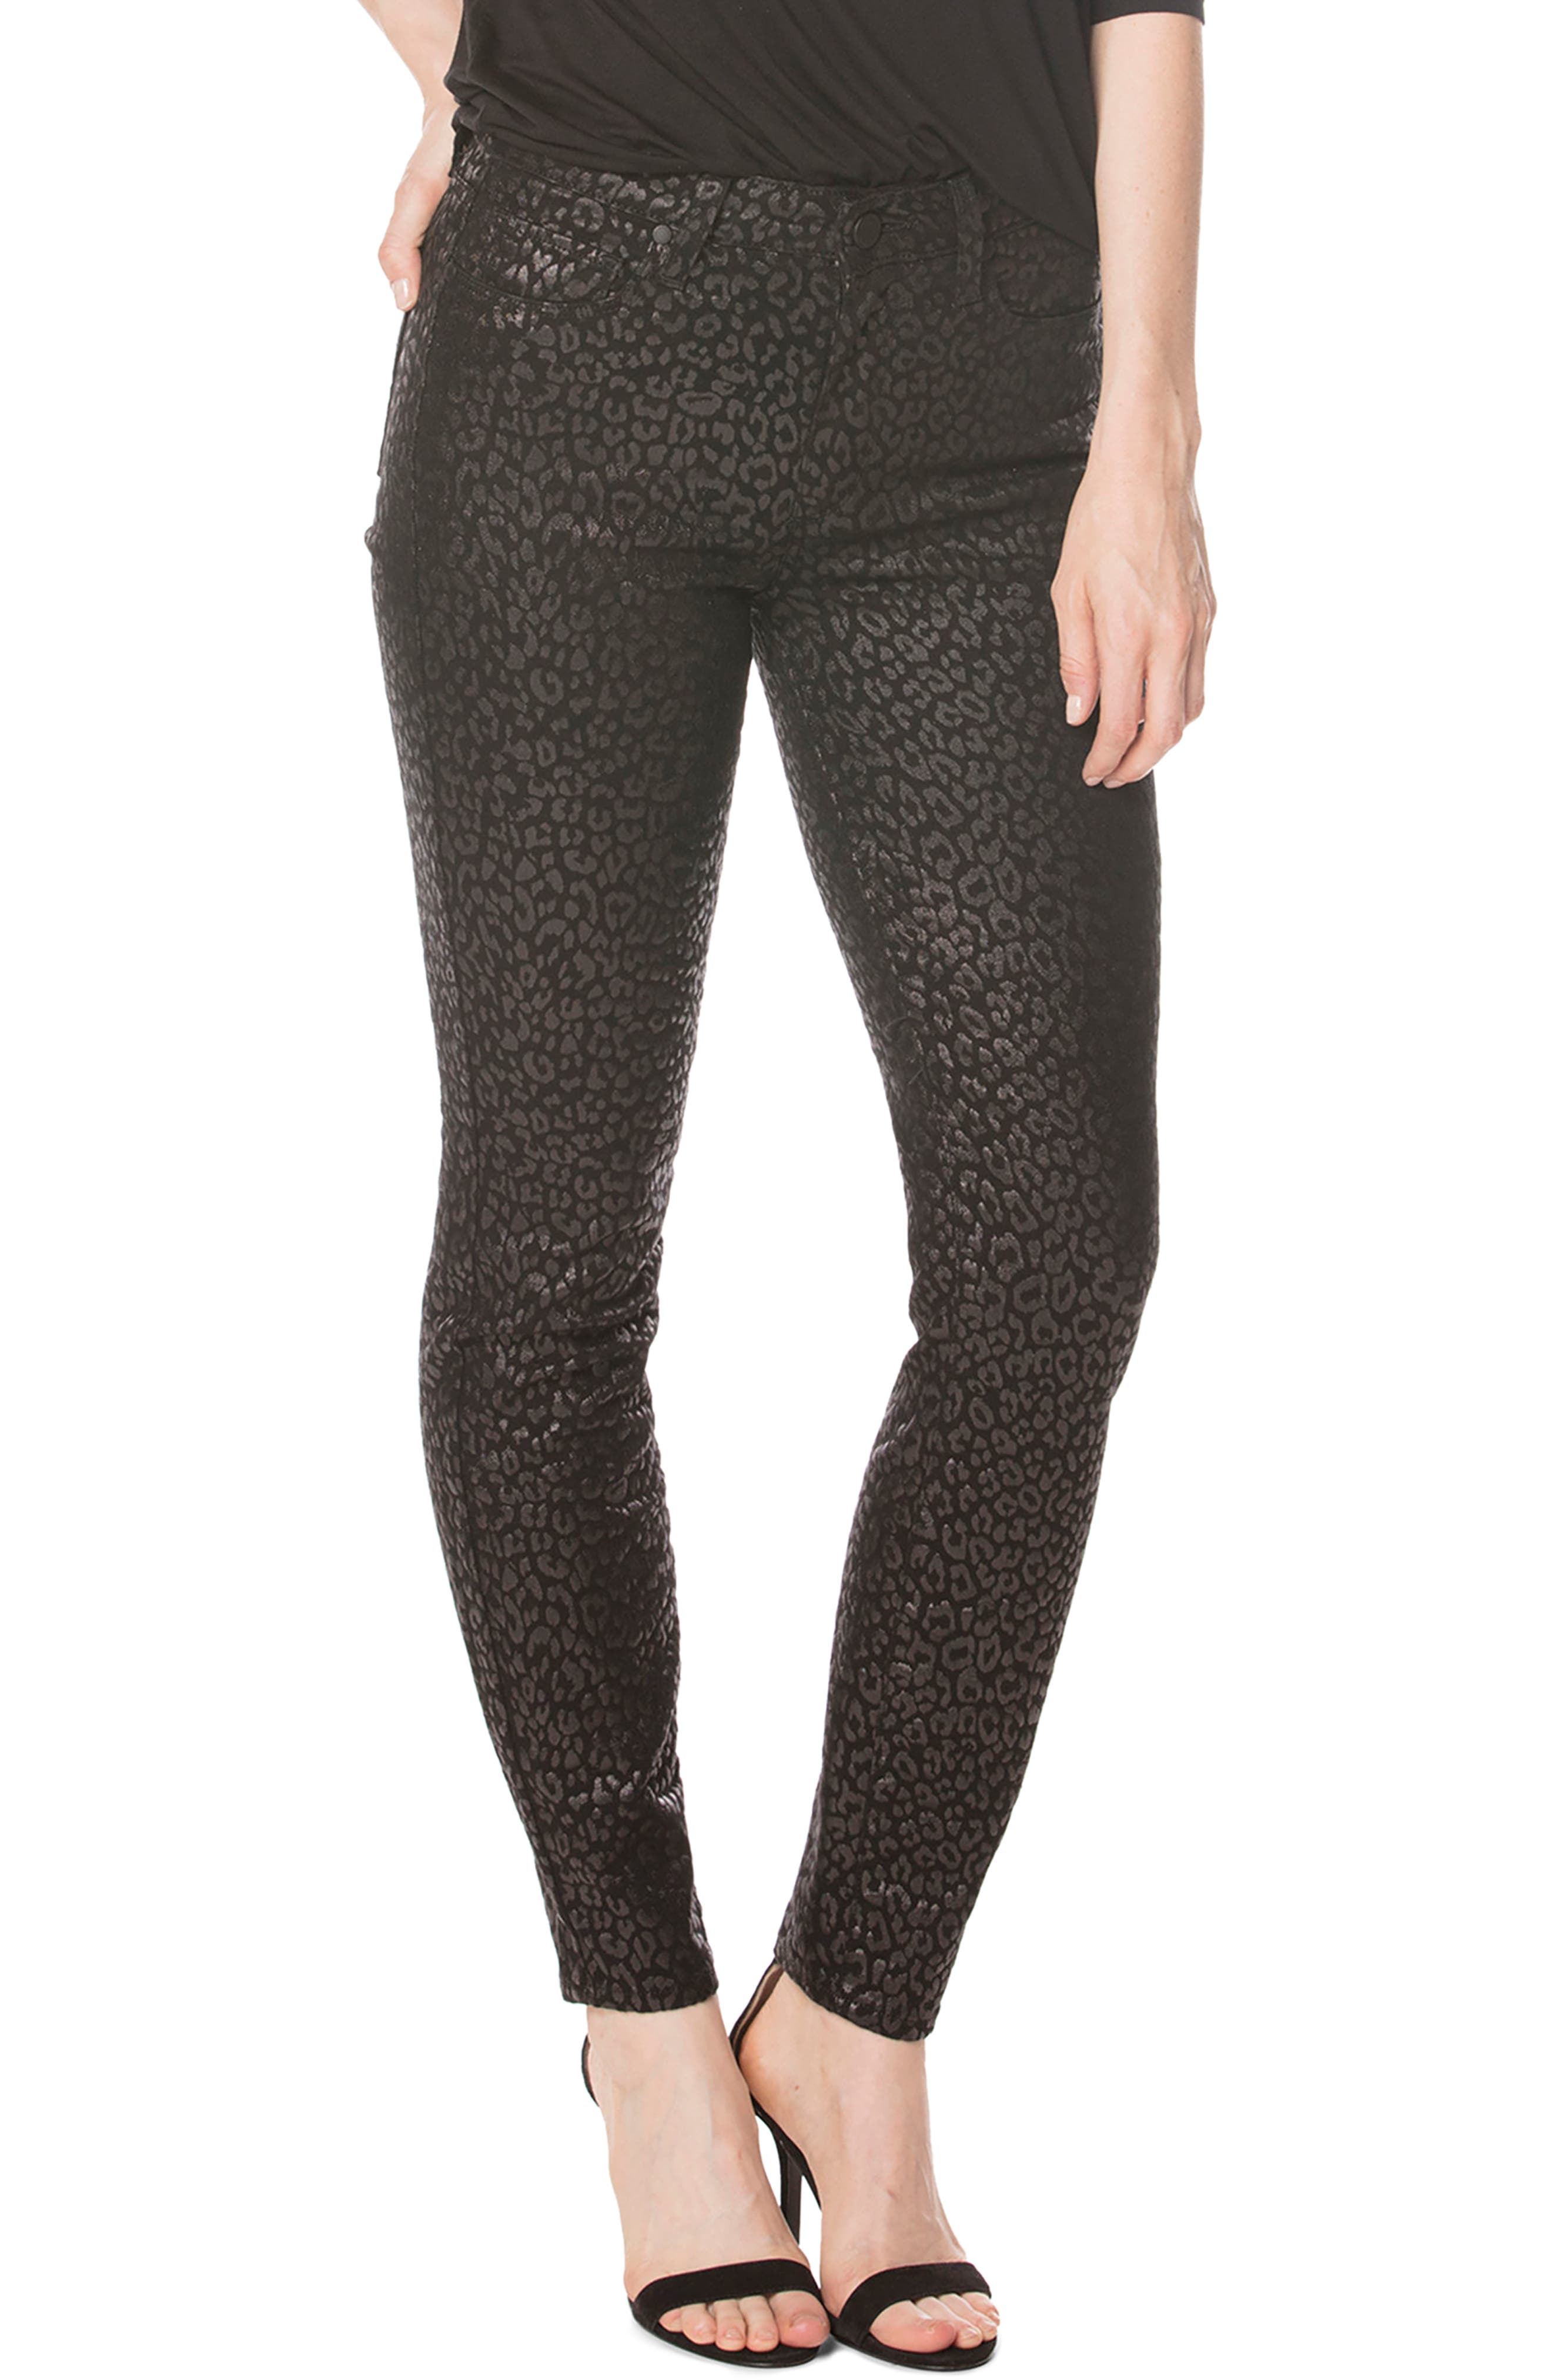 Alternate Image 1 Selected - PAIGE Hoxton High Waist Ultra Skinny Pants (Metallic Leopard Noir)